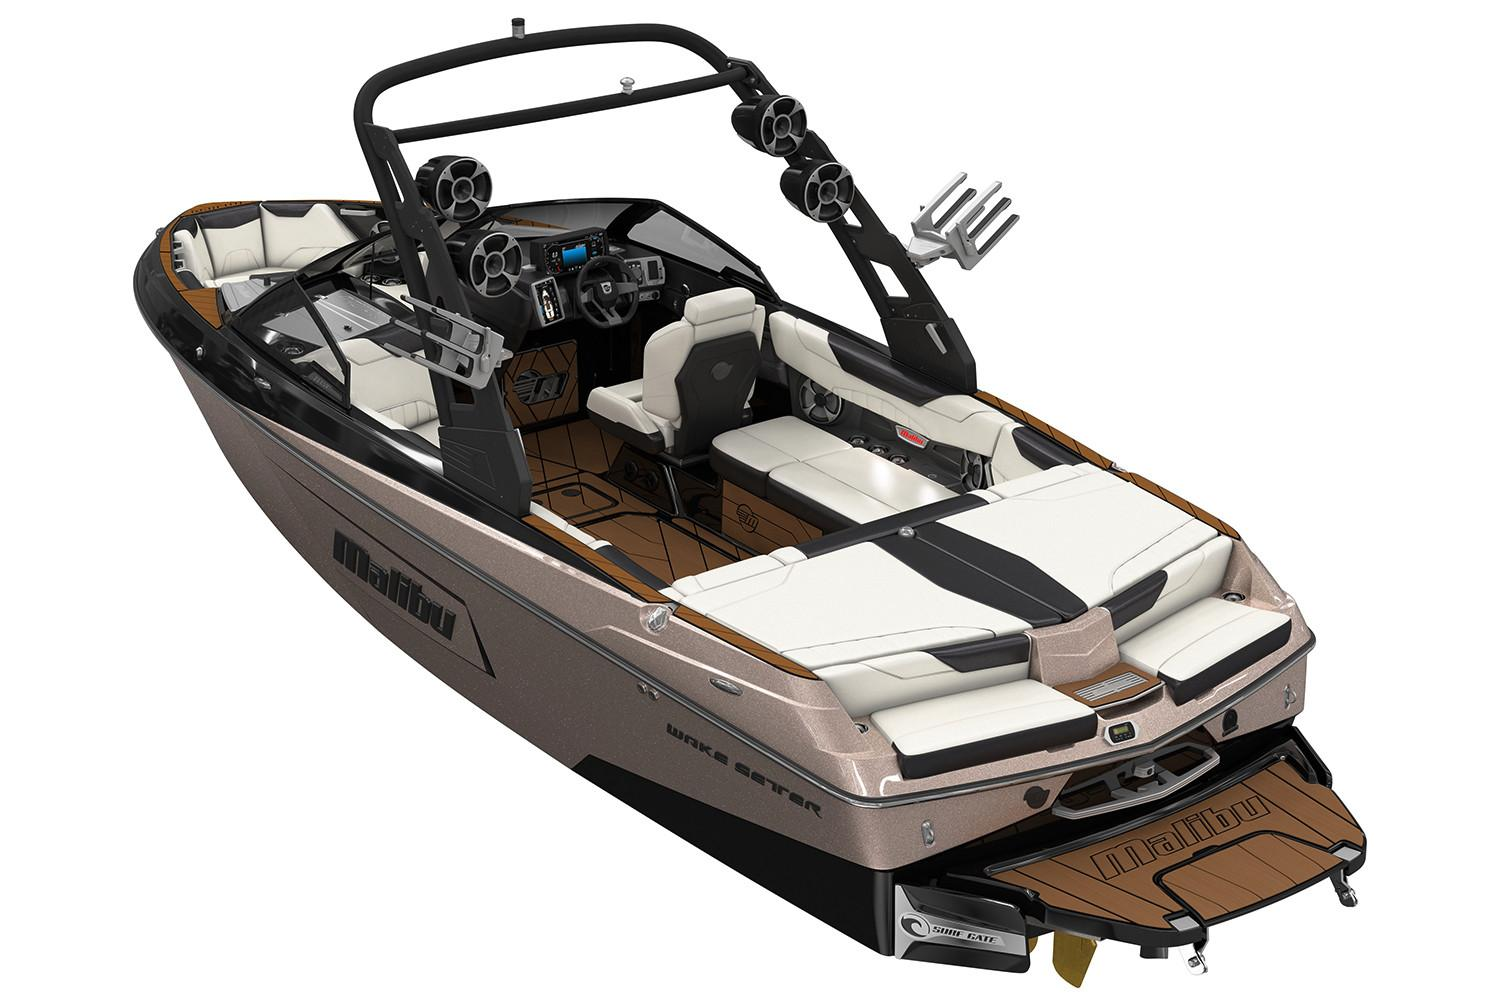 2020 Malibu Wakesetter 23 LSV in Rapid City, South Dakota - Photo 11